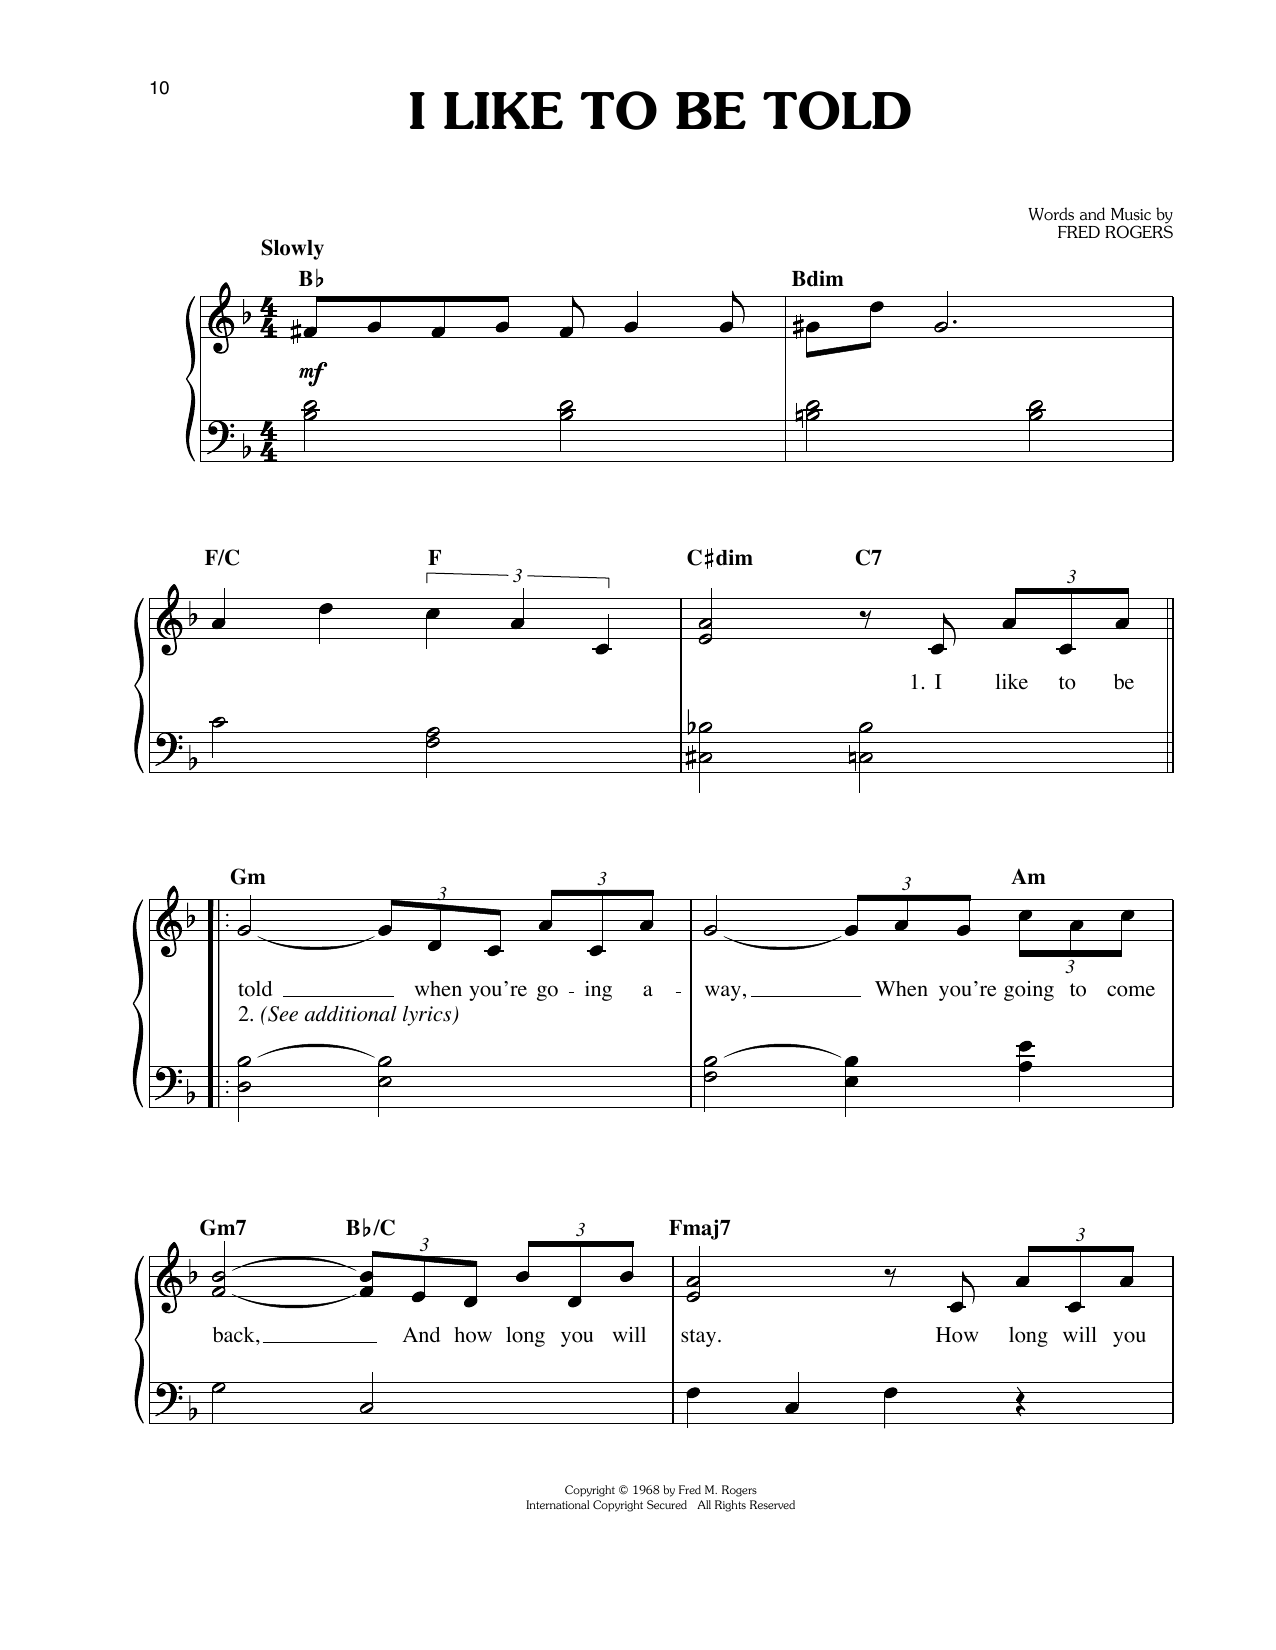 Fred Rogers I Like To Be Told sheet music notes and chords. Download Printable PDF.